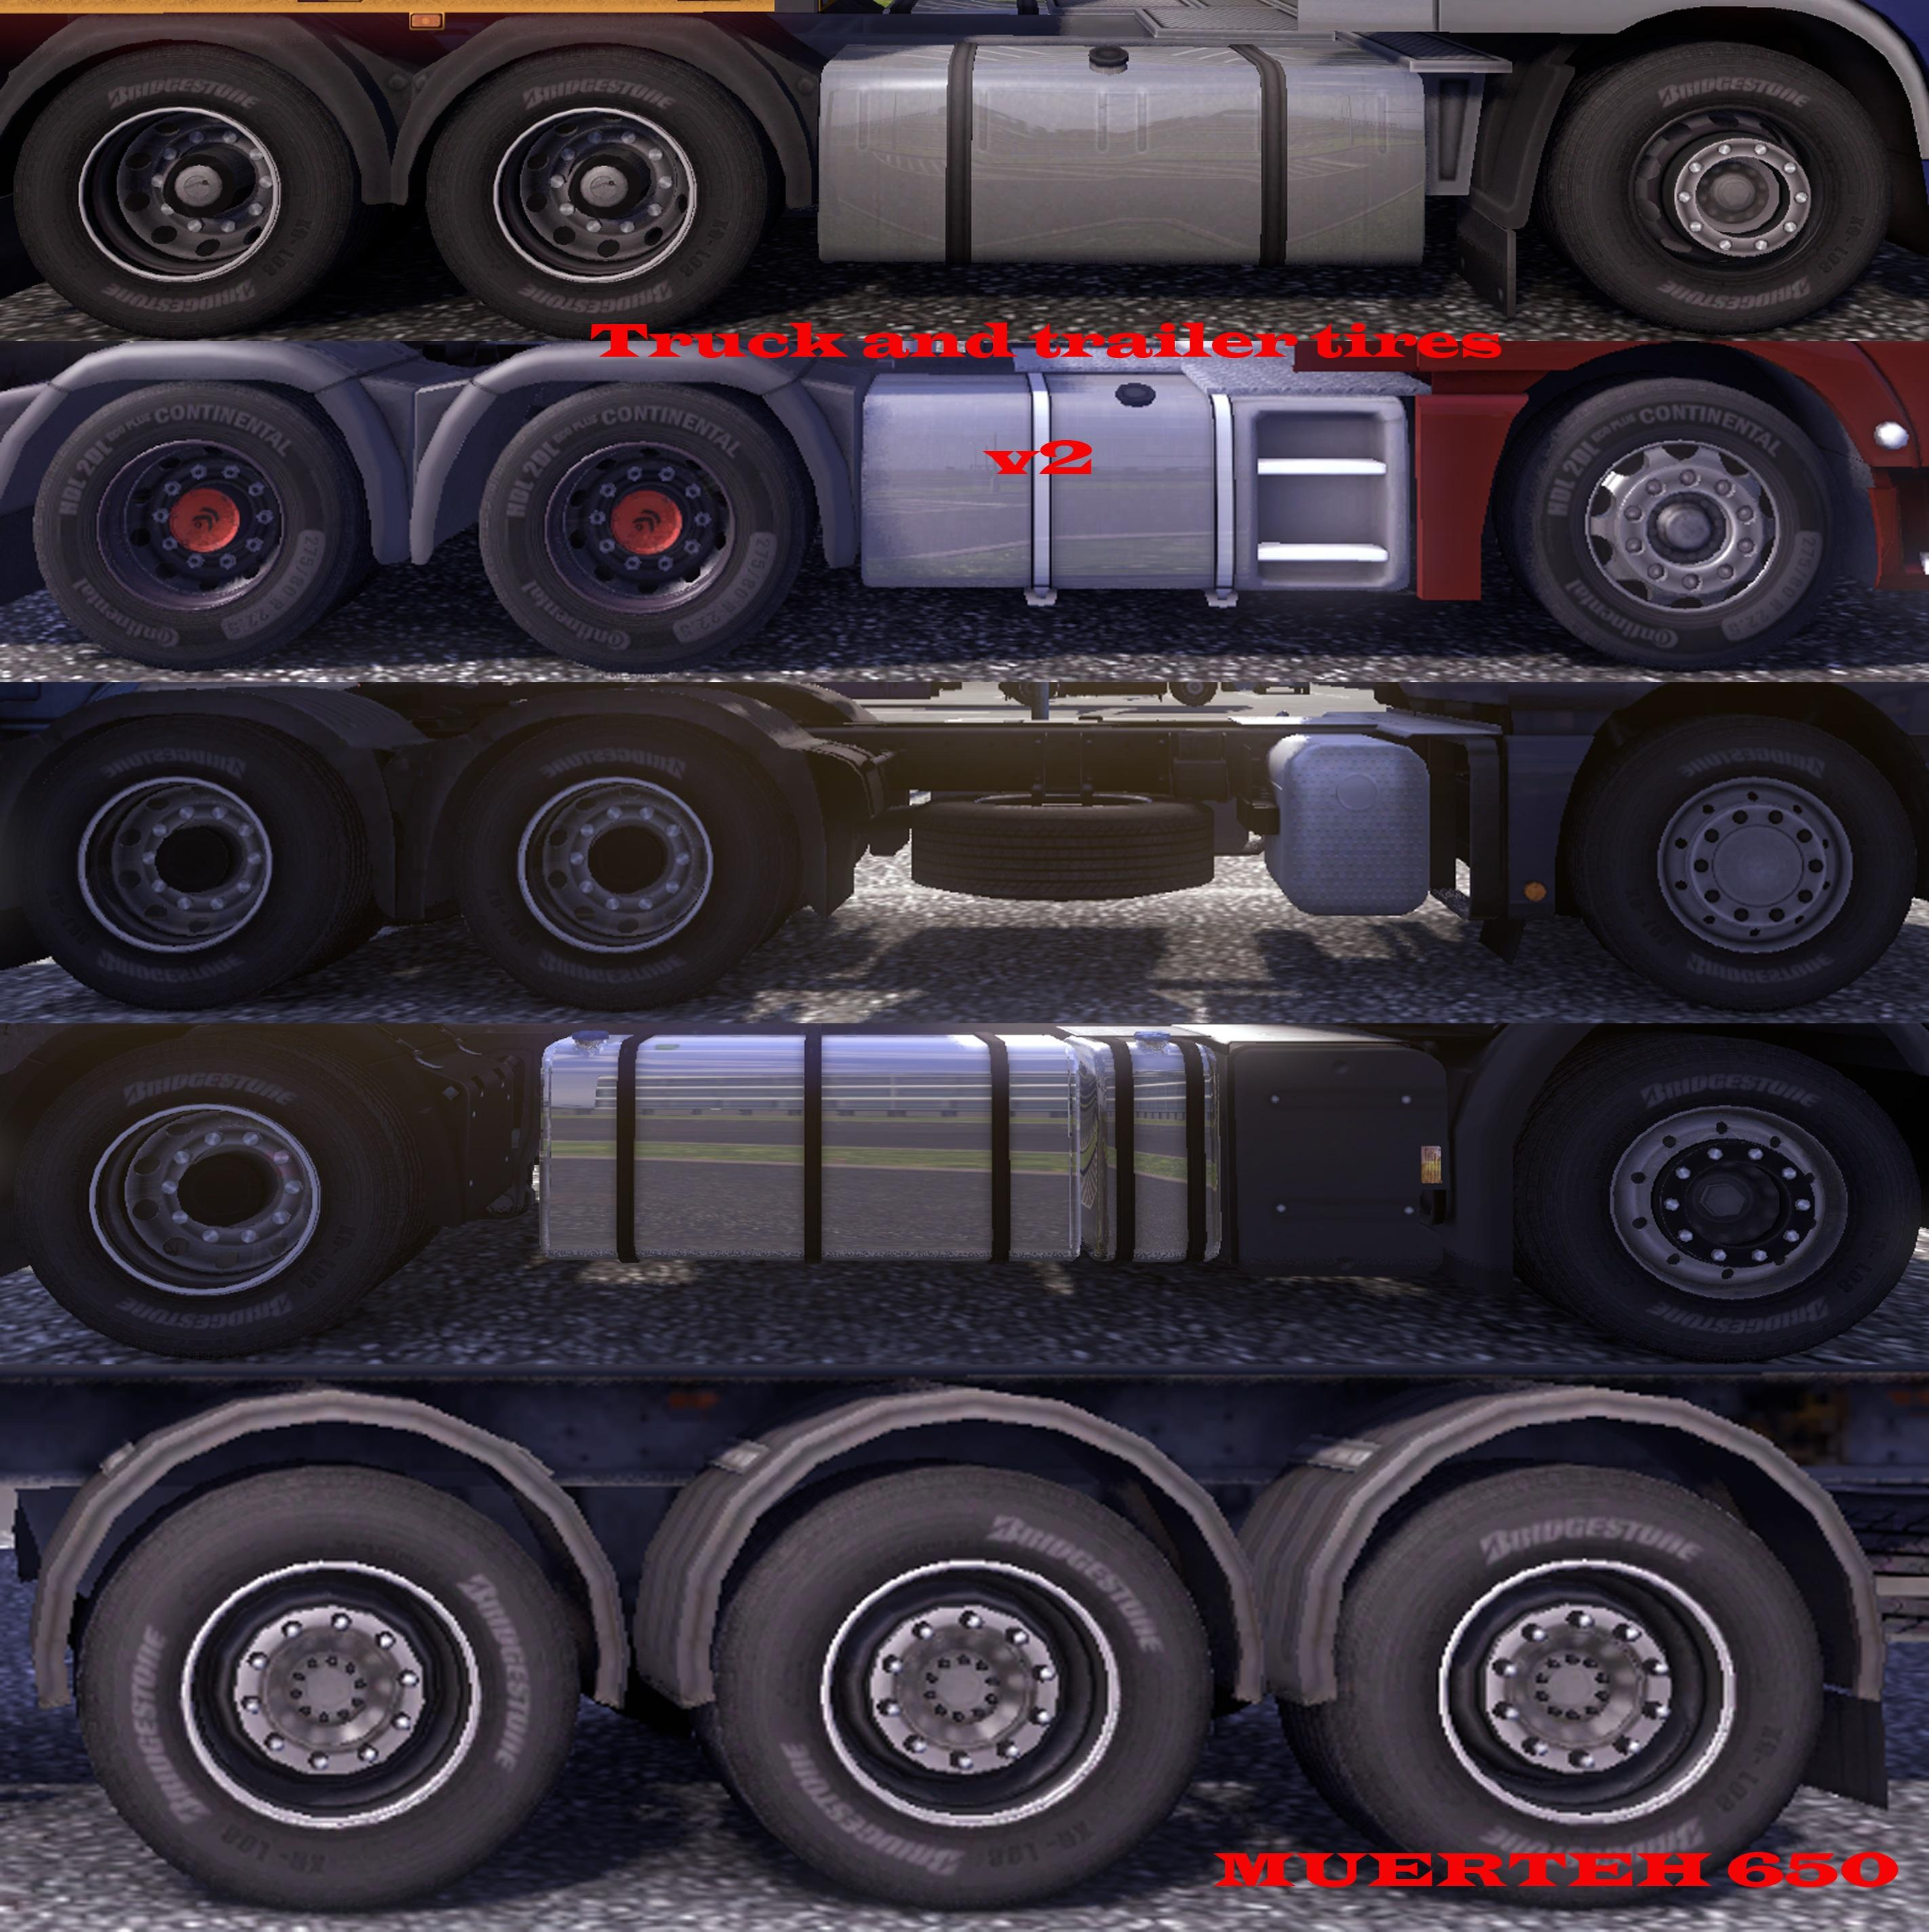 Bass Tracker V18 All Fish 83573 besides 2002 Yamaha Vmx 1200 V Max together with 39 Outstanding Bugatti Wallpapers also Showthread further Truck And Trailer Tires V2. on v18 engine